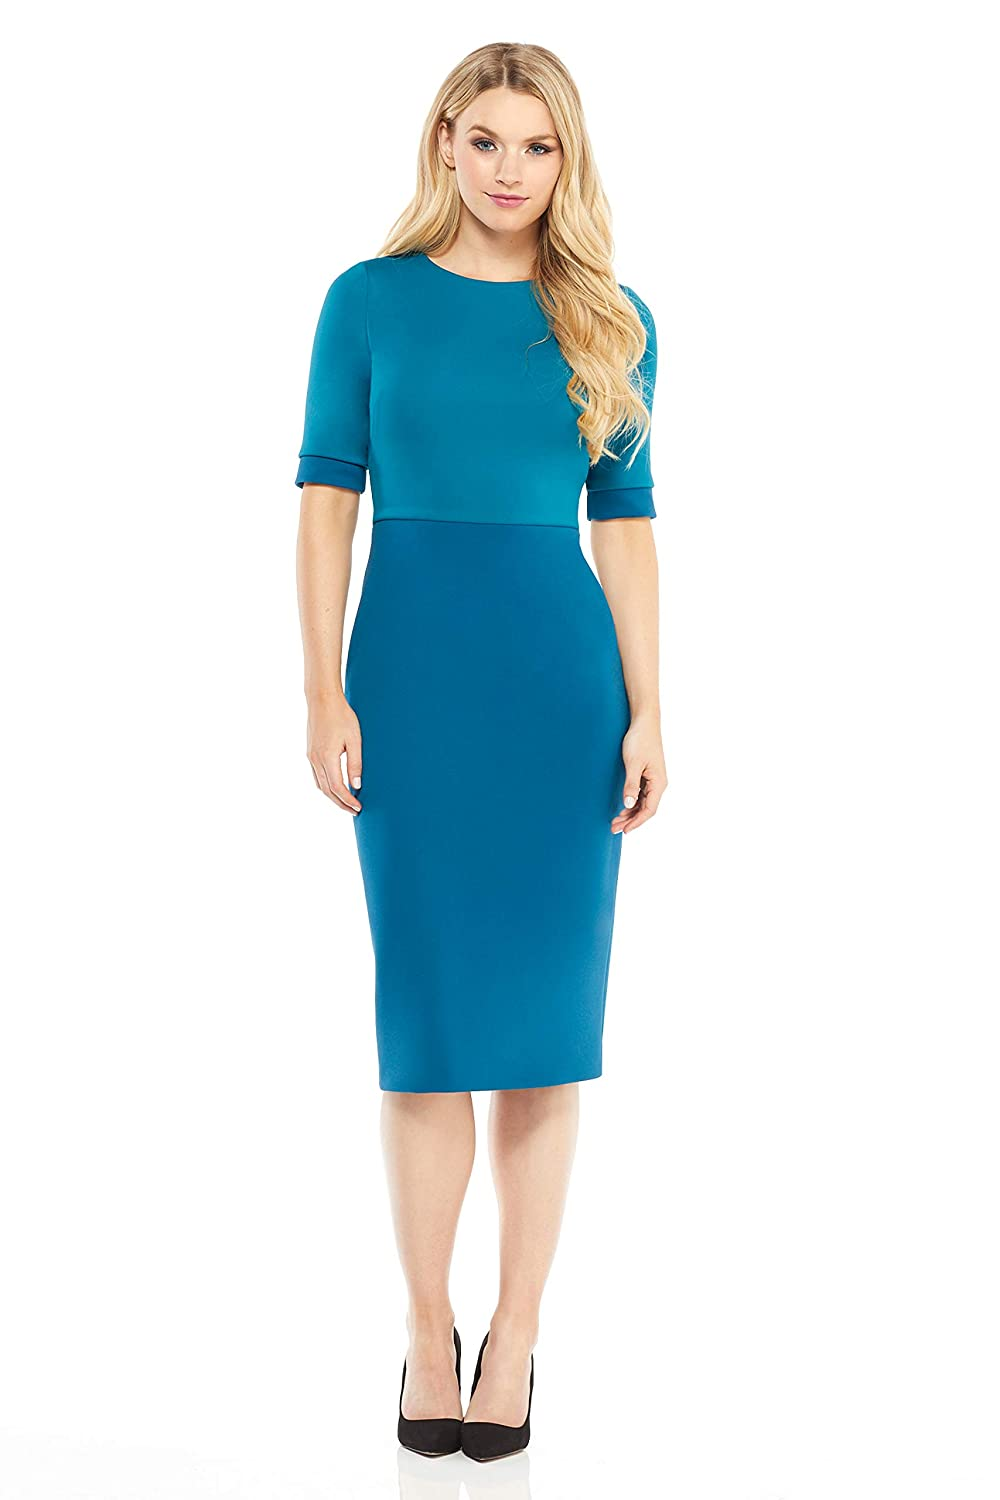 bluee bluee Maggy London Ellia Midi